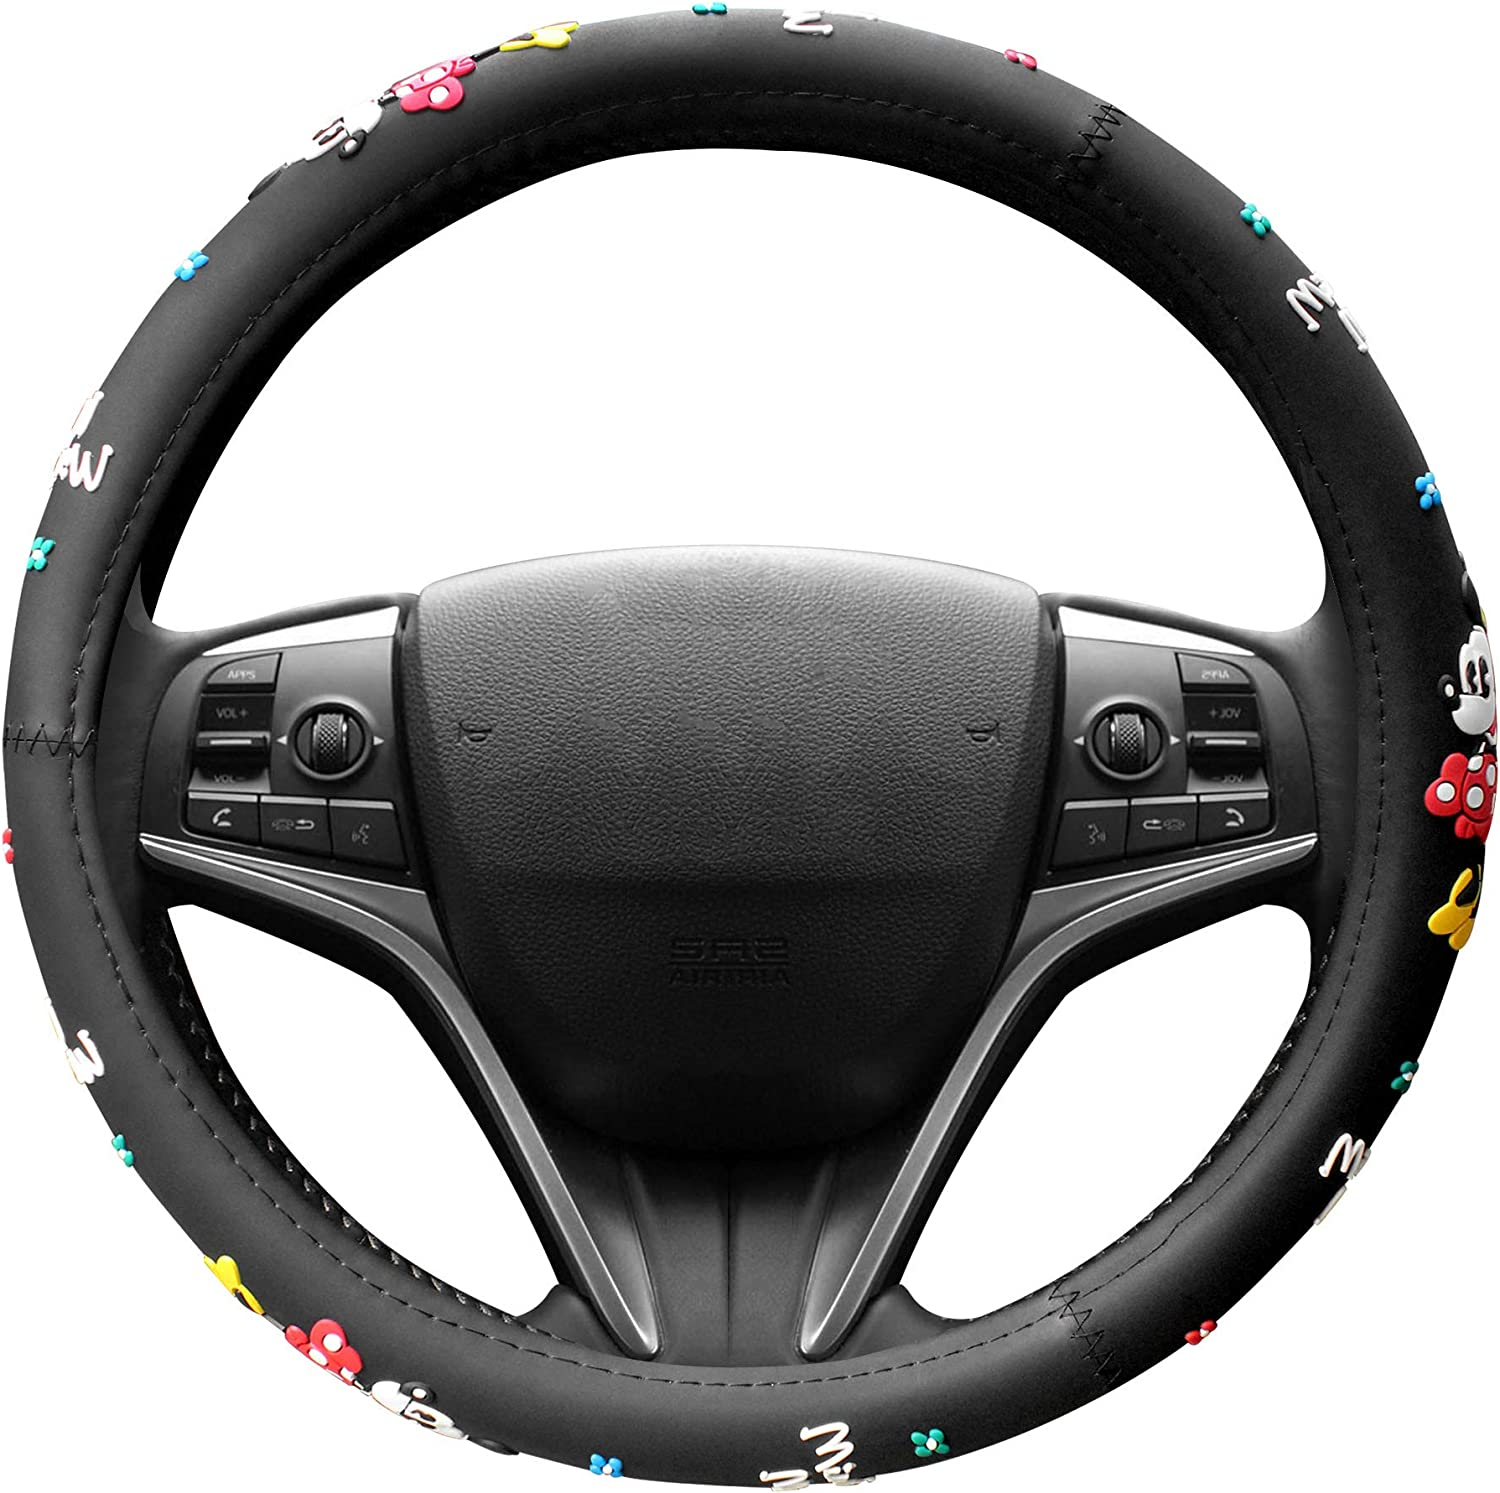 Disney Minnie Mouse Doll Toys Car Accessories Steering Wheel Cover Seat Cover